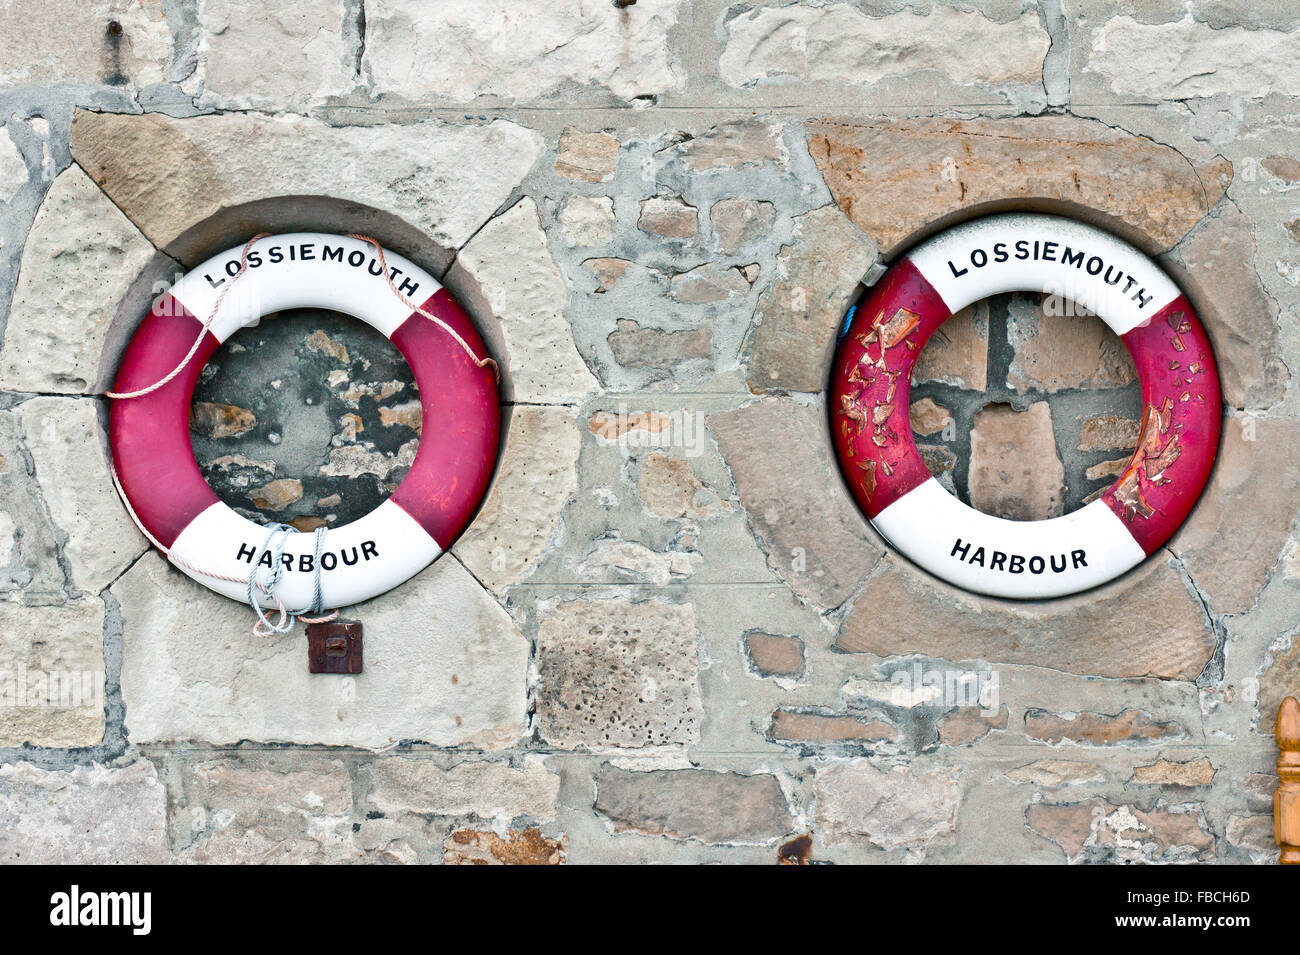 Two red and white emergency flotation devices at Lossiemouth harbour in Scotland Stock Photo